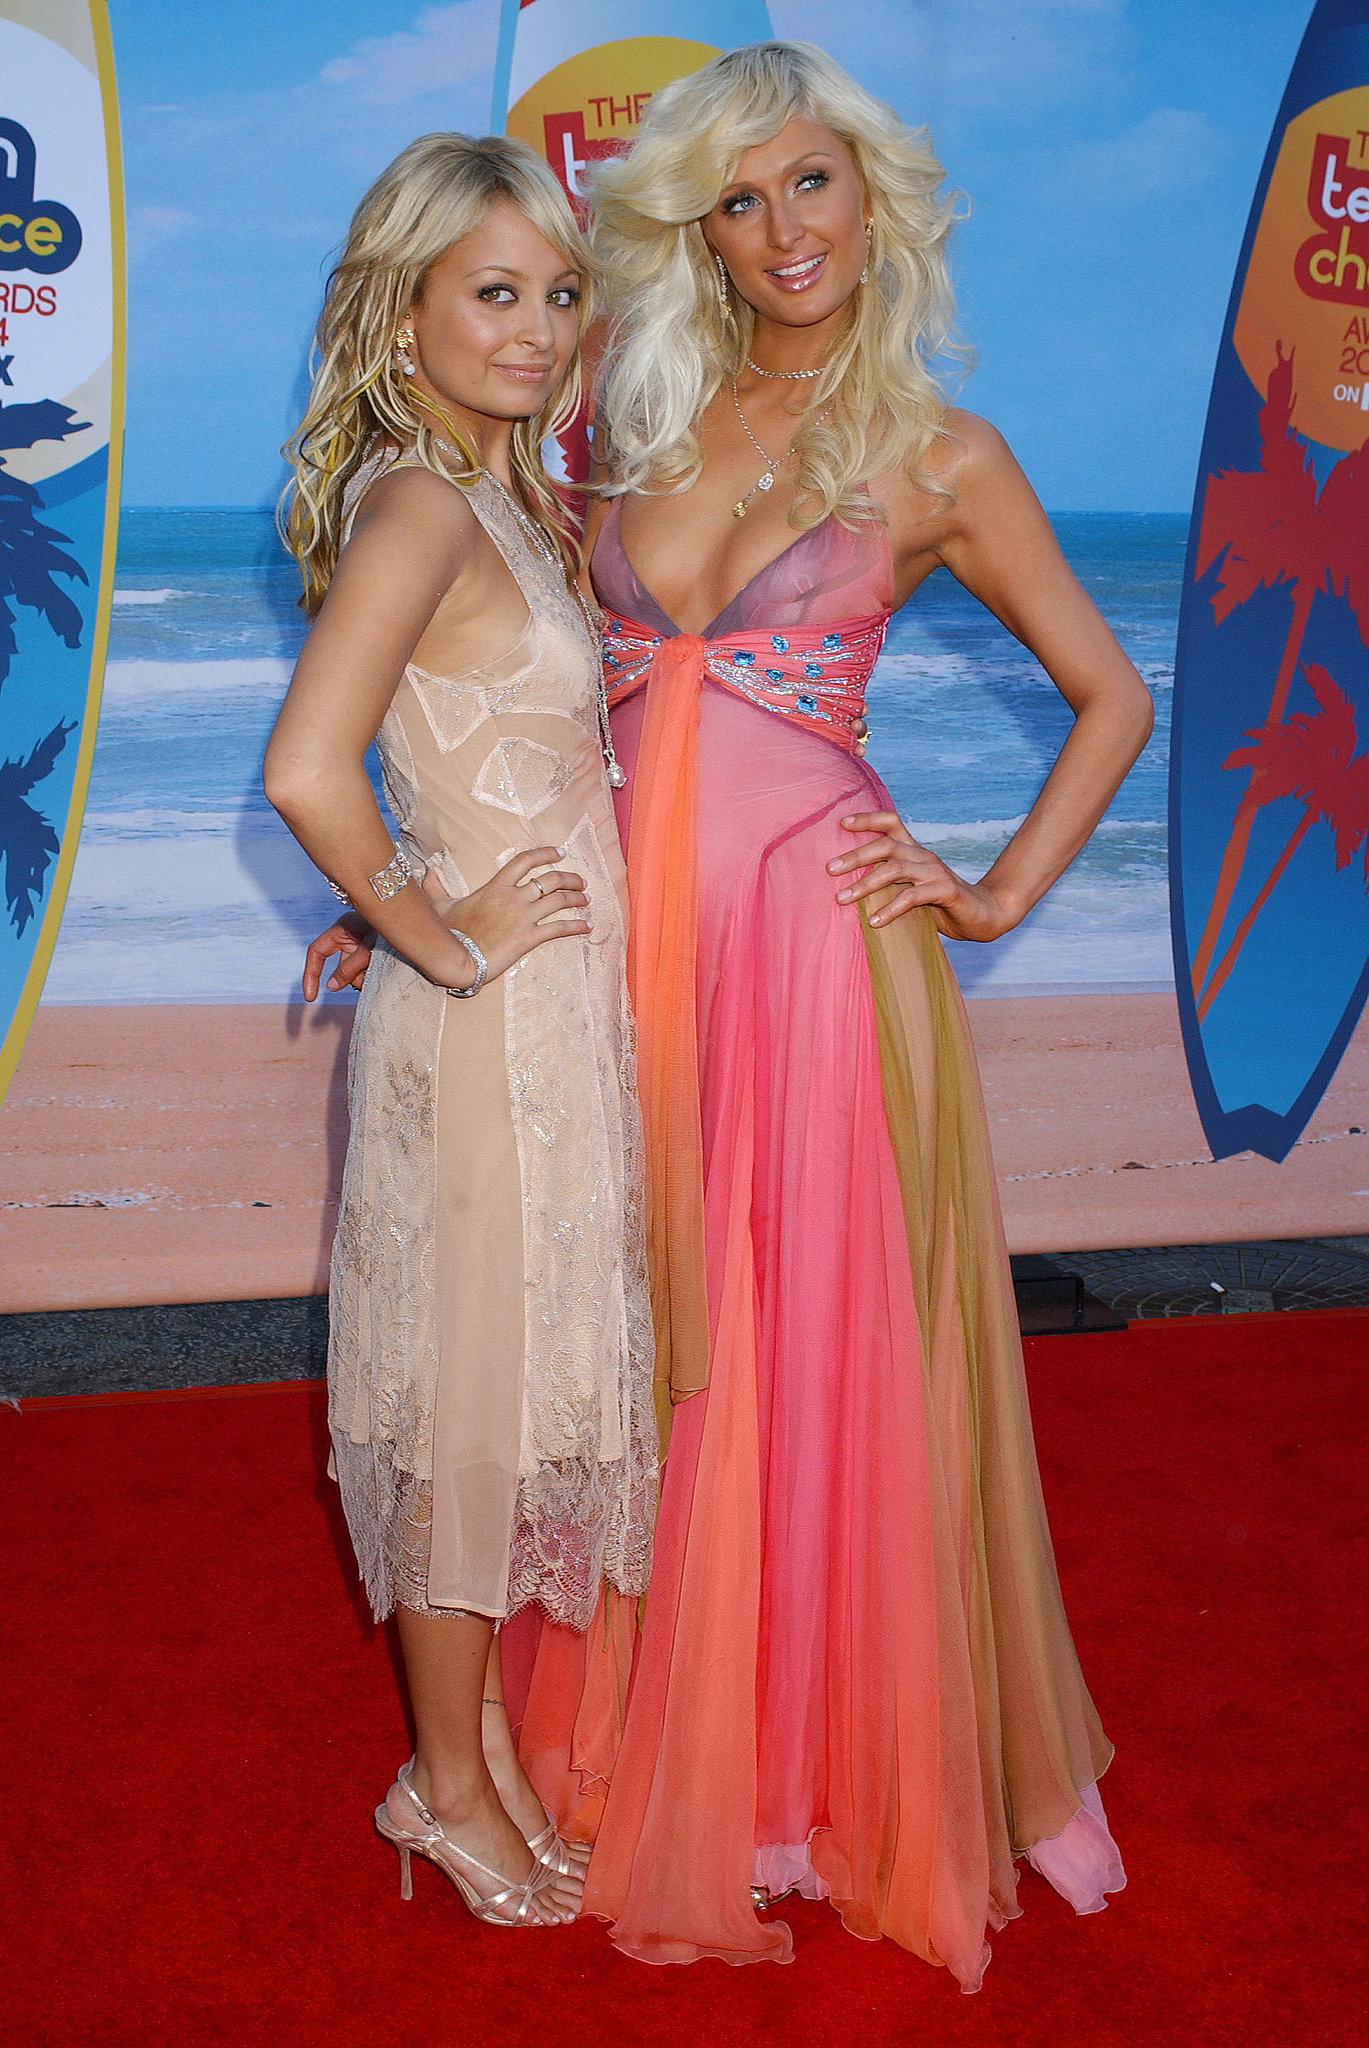 She hit the red carpet for her Teen Choice Awards hosting gig alongside Paris in August 2004.